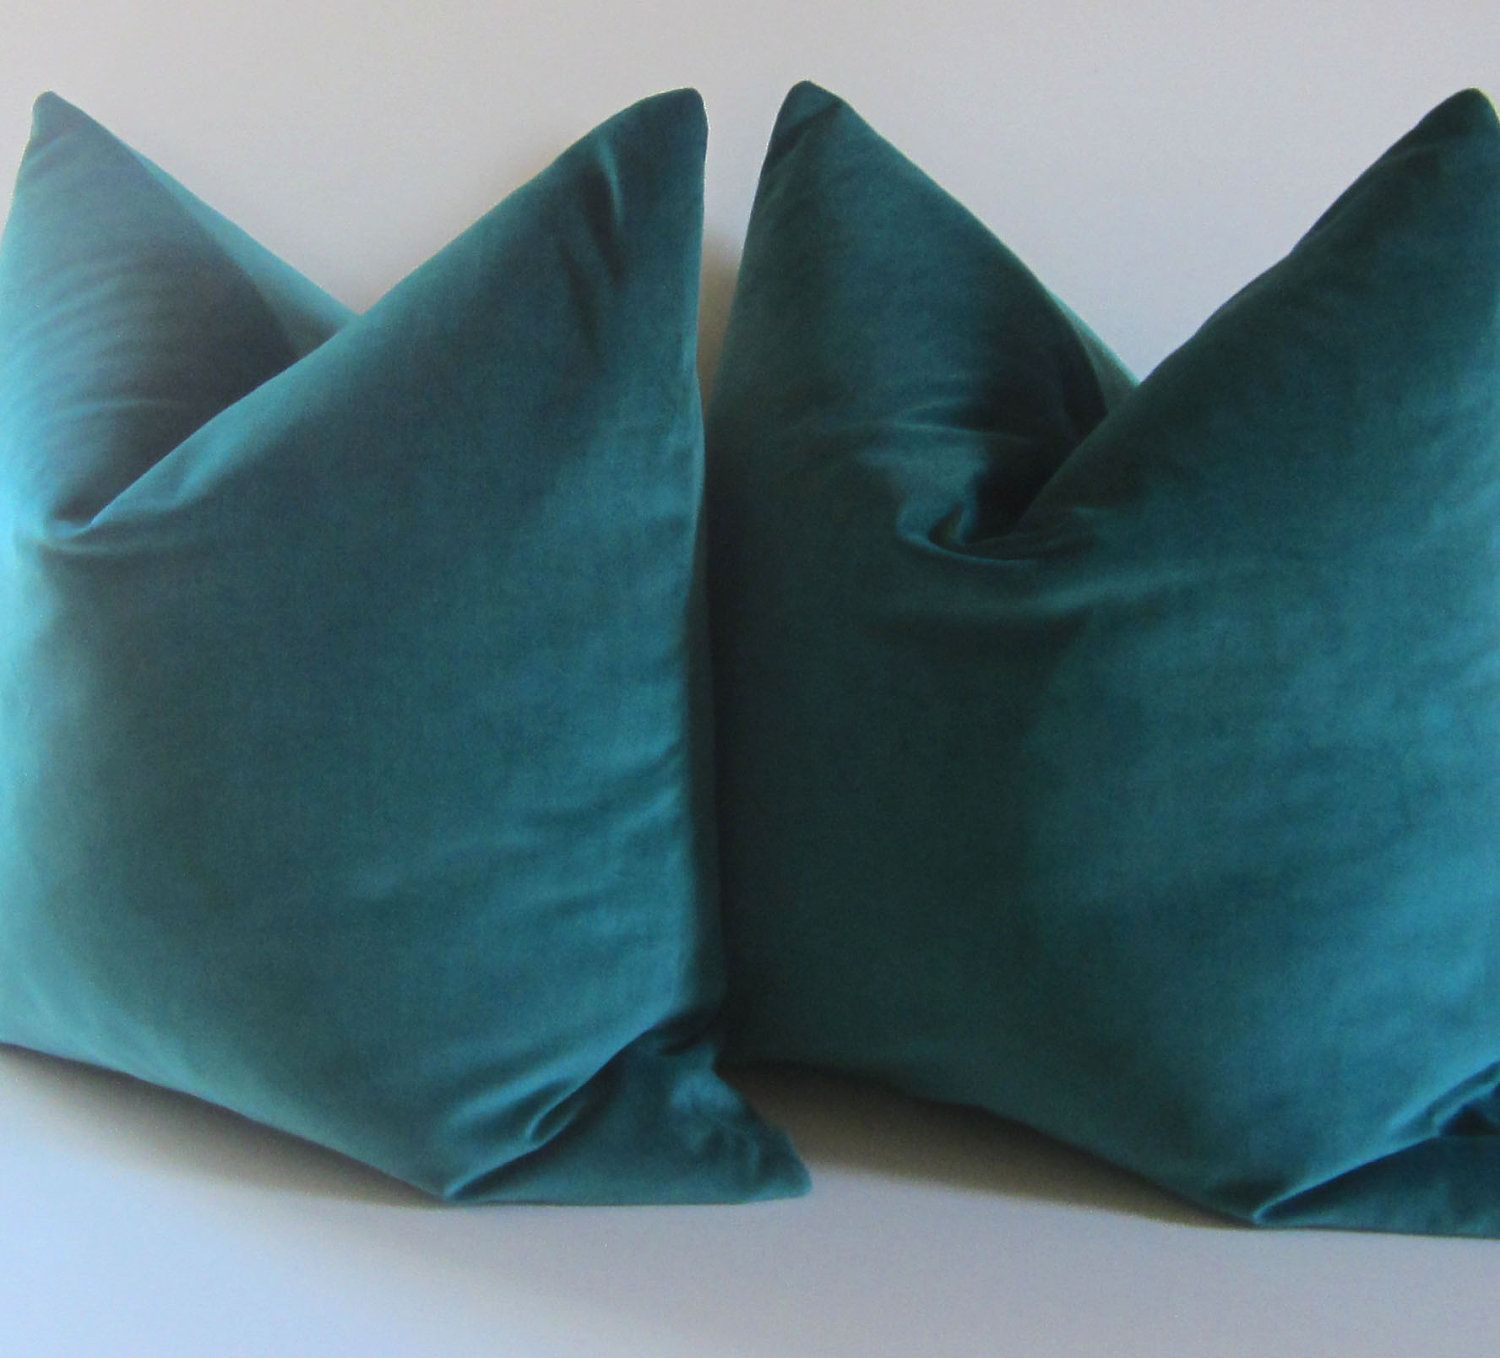 Throw Pillow Covers Teal : Set of Two - Teal Pillows - Decorative Pillow Cover - 20 inch - teal